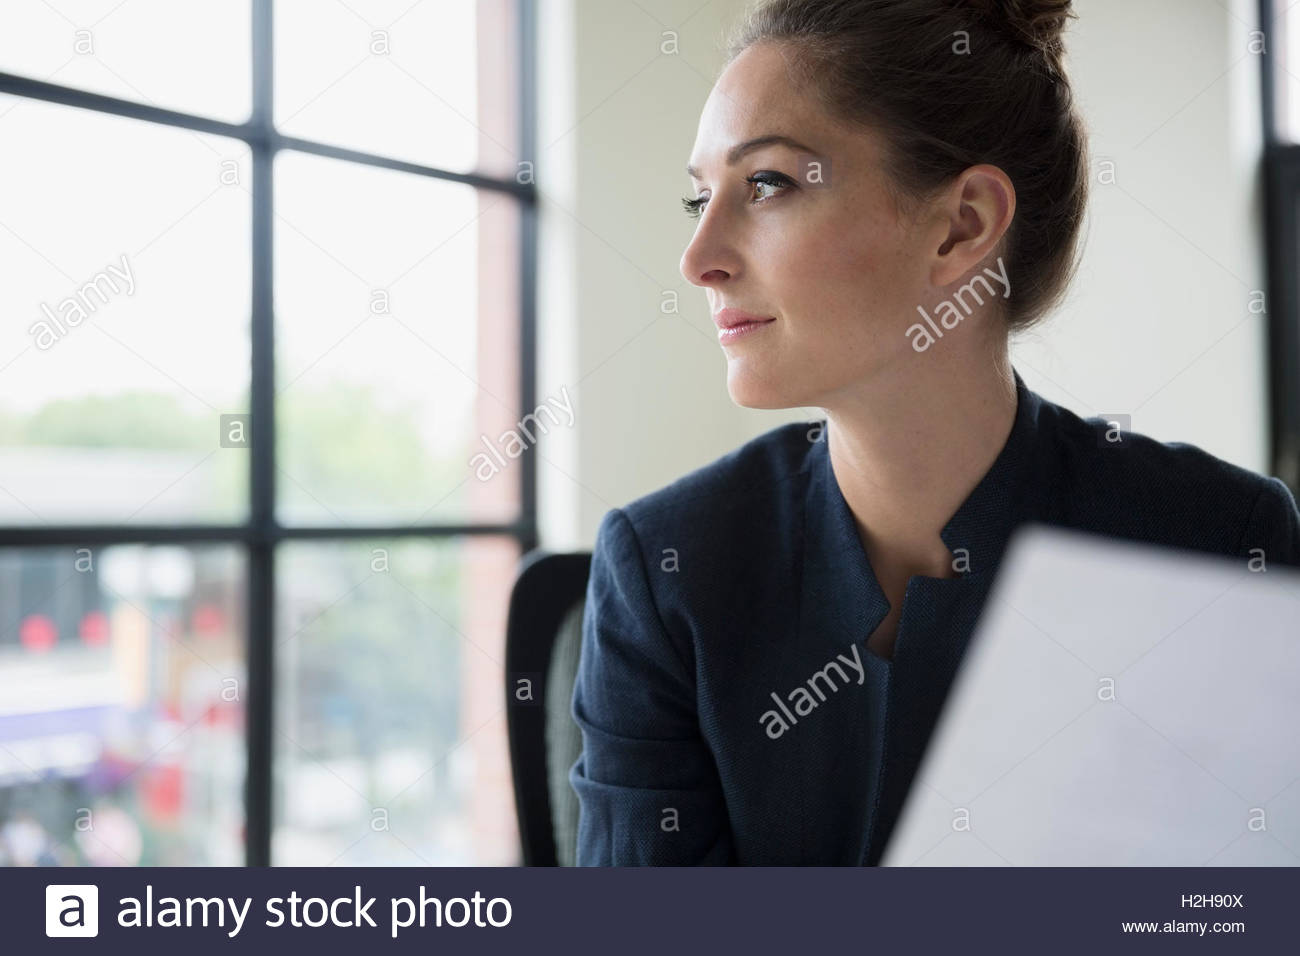 Pensive businesswoman with paperwork looking out office window Photo Stock